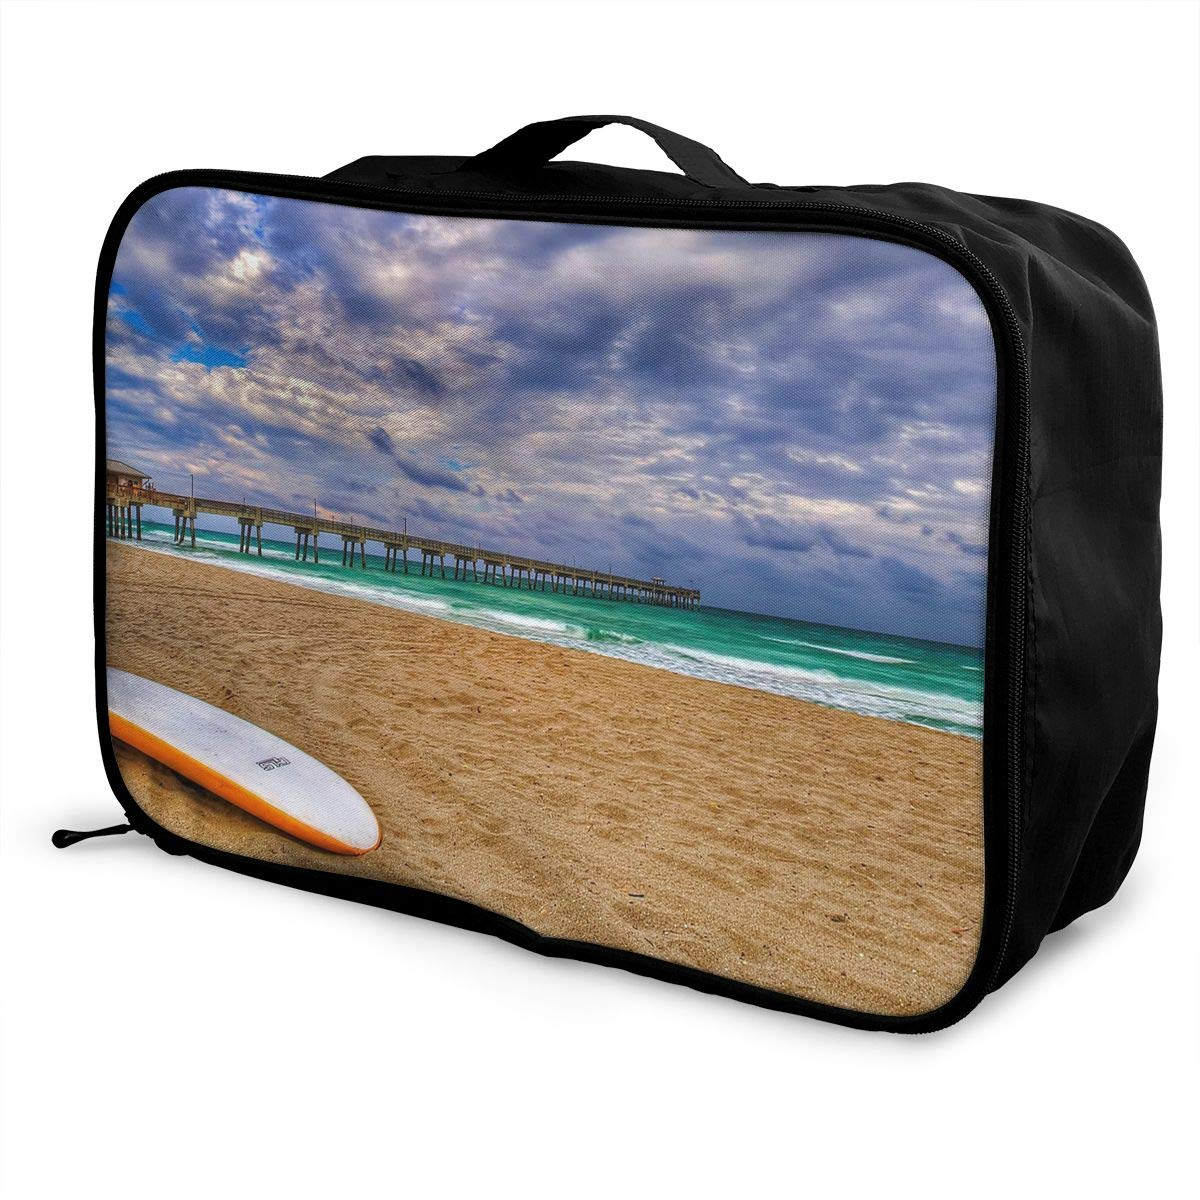 Travel Luggage Duffle Bag Lightweight Portable Handbag Surf Board Large Capacity Waterproof Foldable Storage Tote